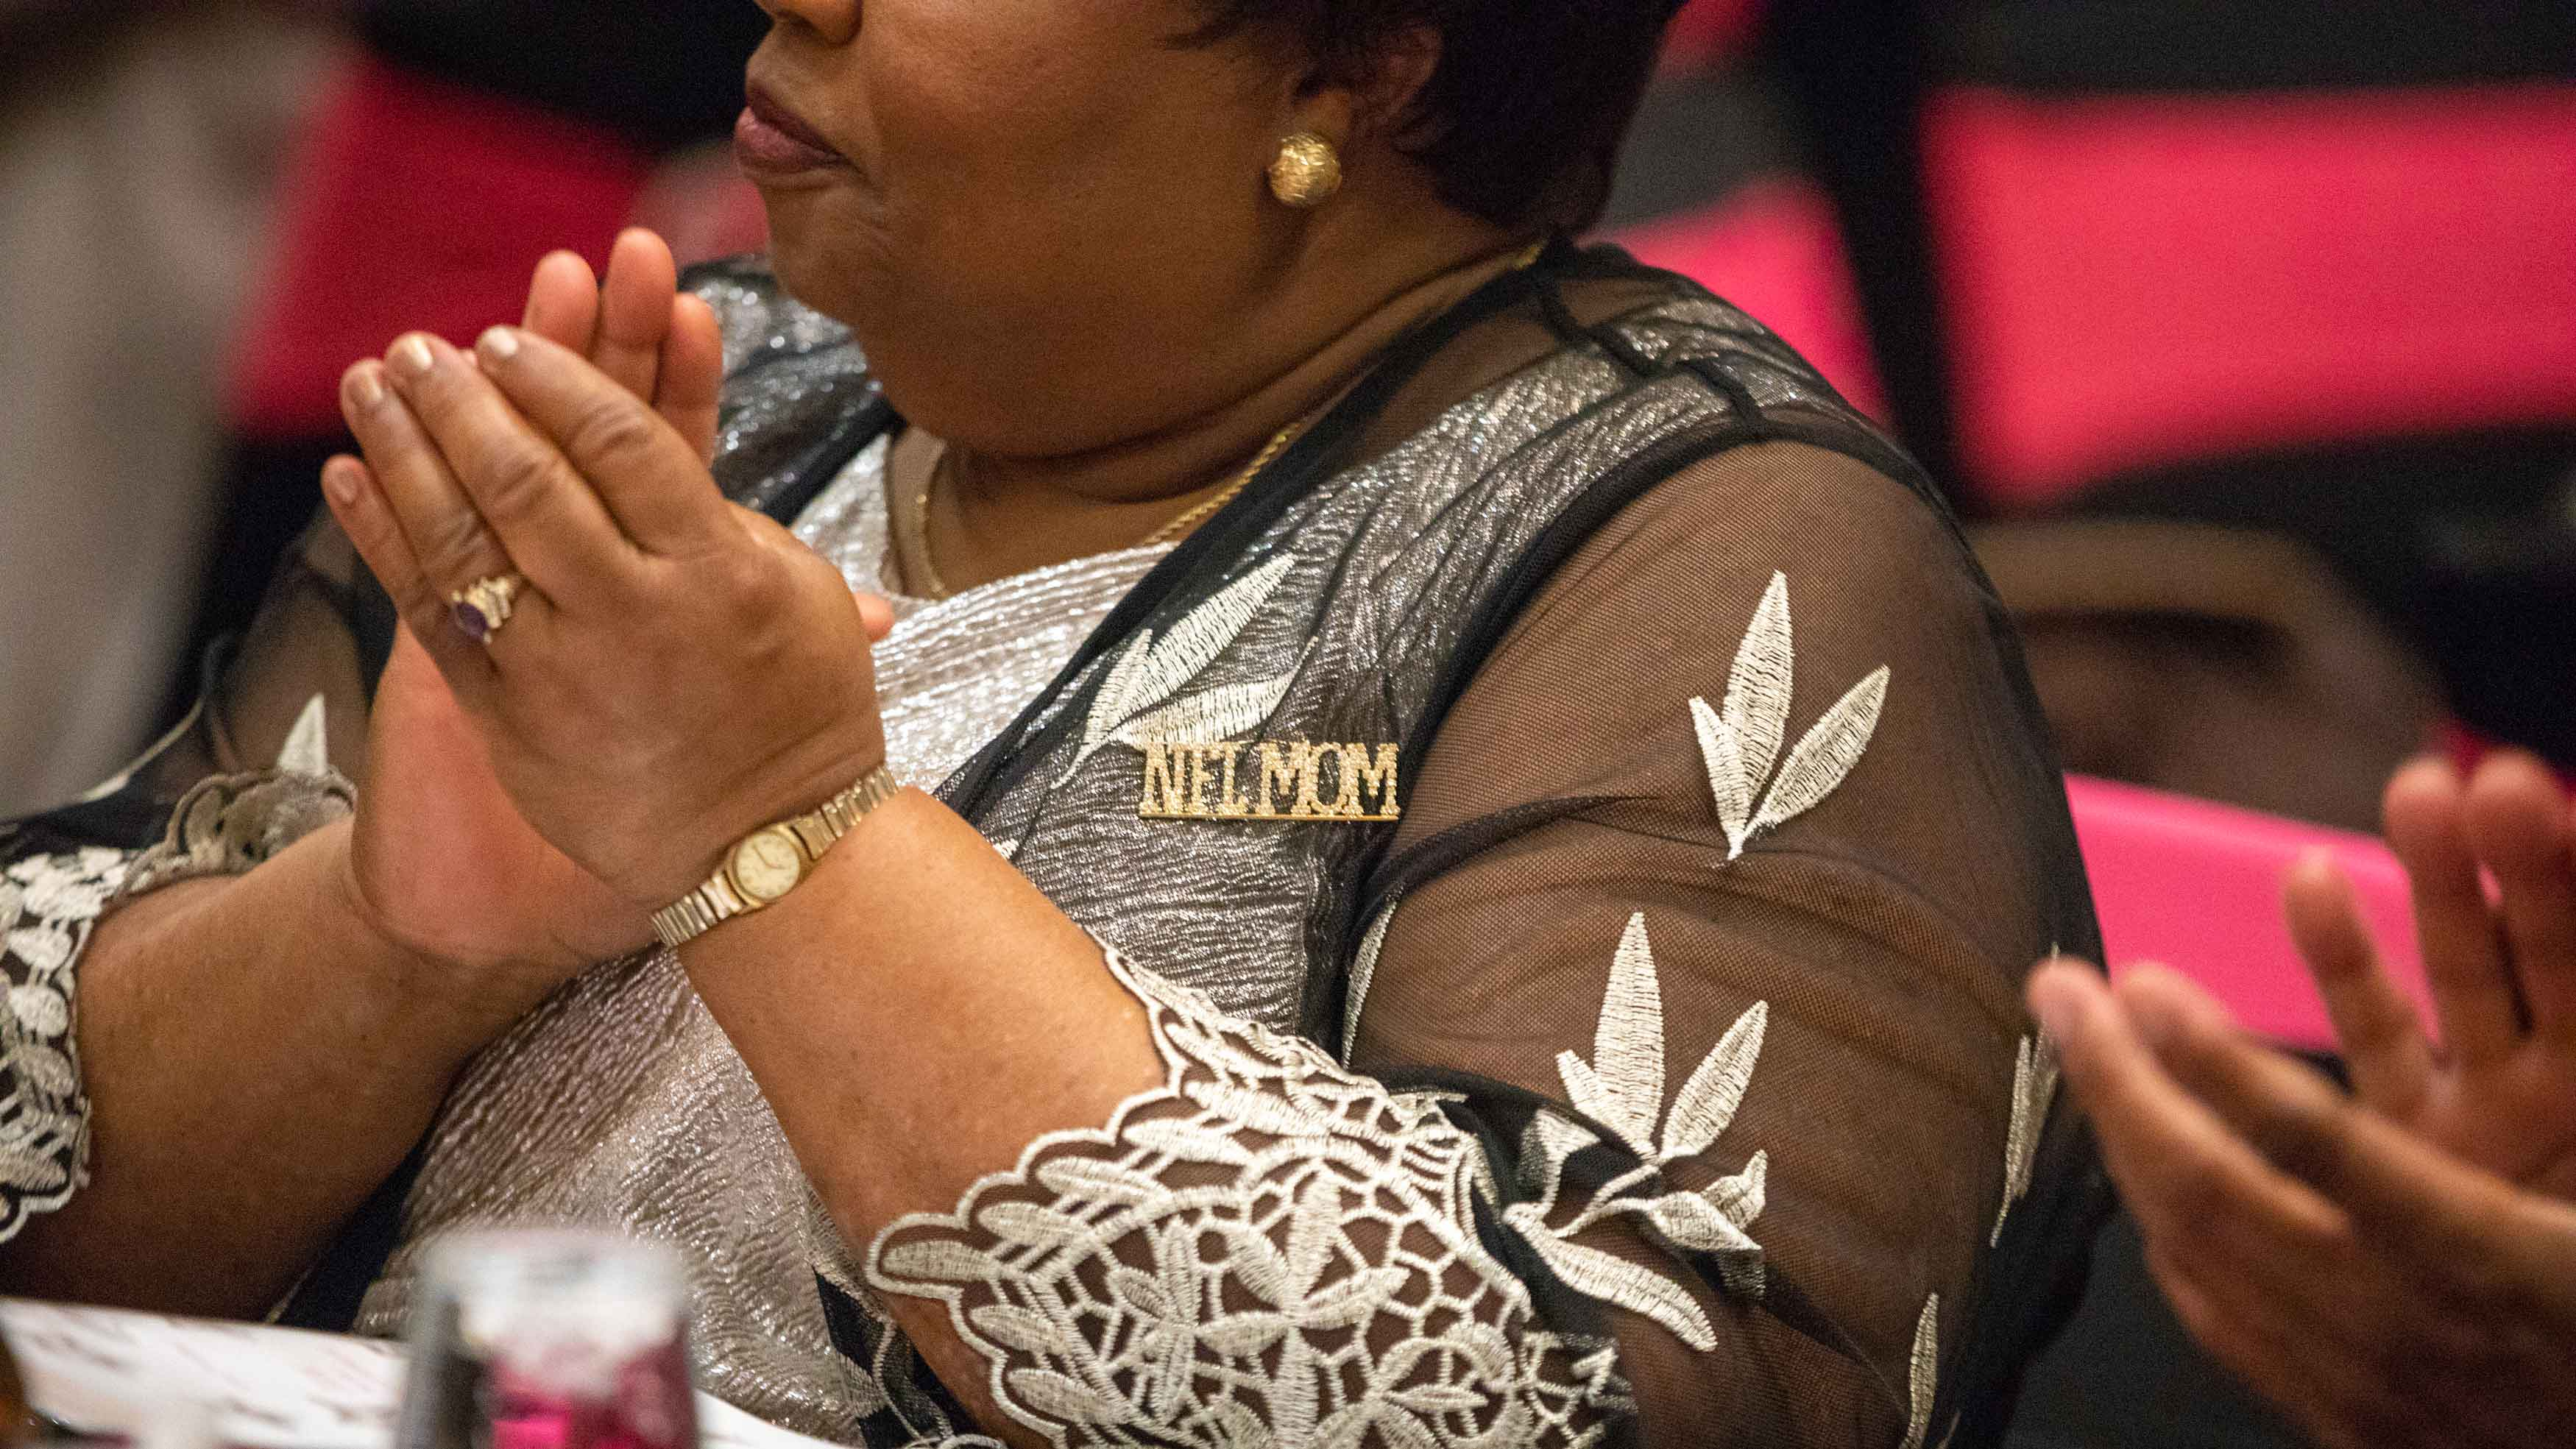 """Juanita Stevens, wearing an """"NFL MOM"""" pin, at a dinner table during the party."""